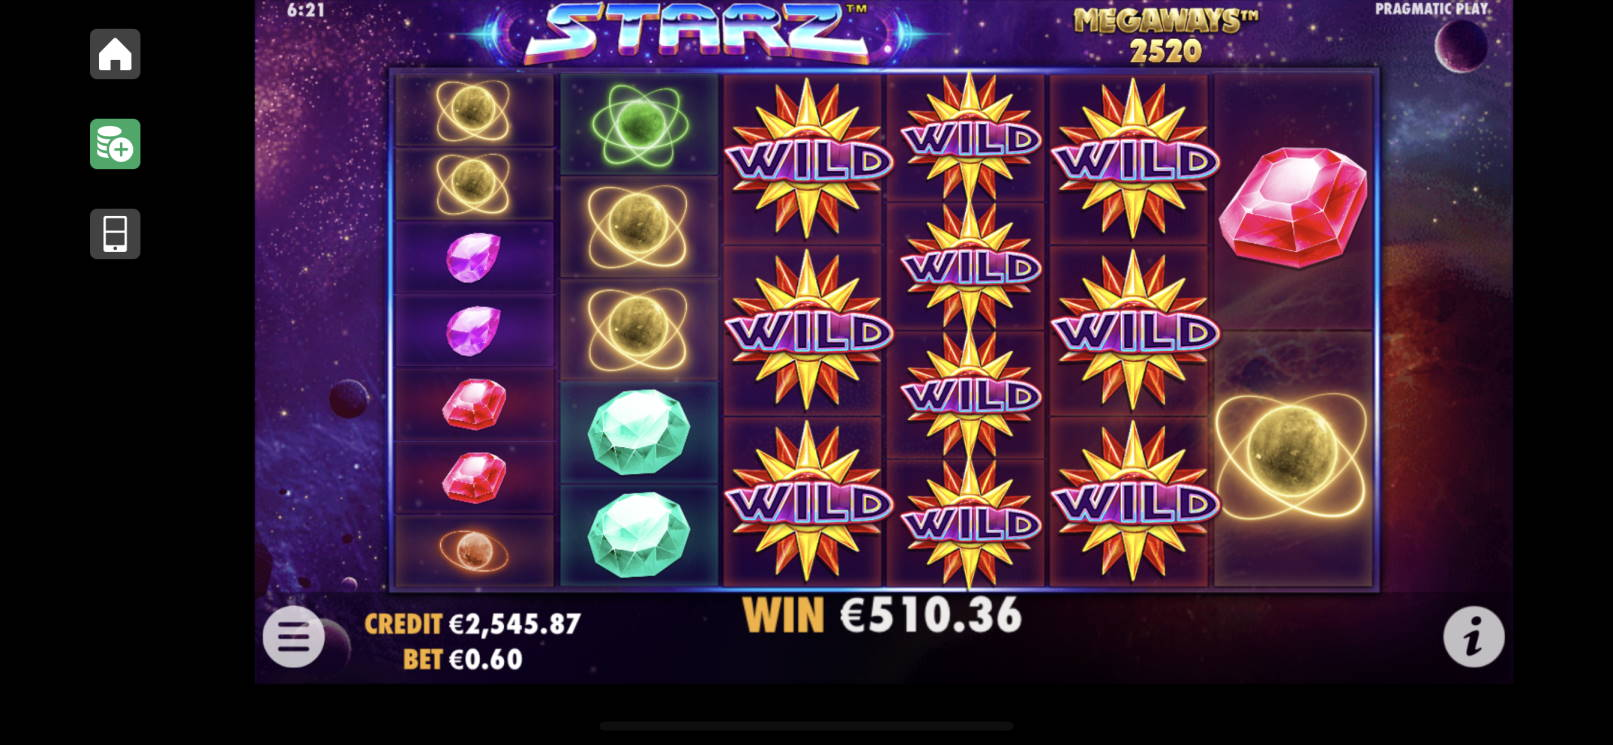 Starz Megaways Casino win picture by livewithoutlimits1986 18.12.2020 510.36e 851X